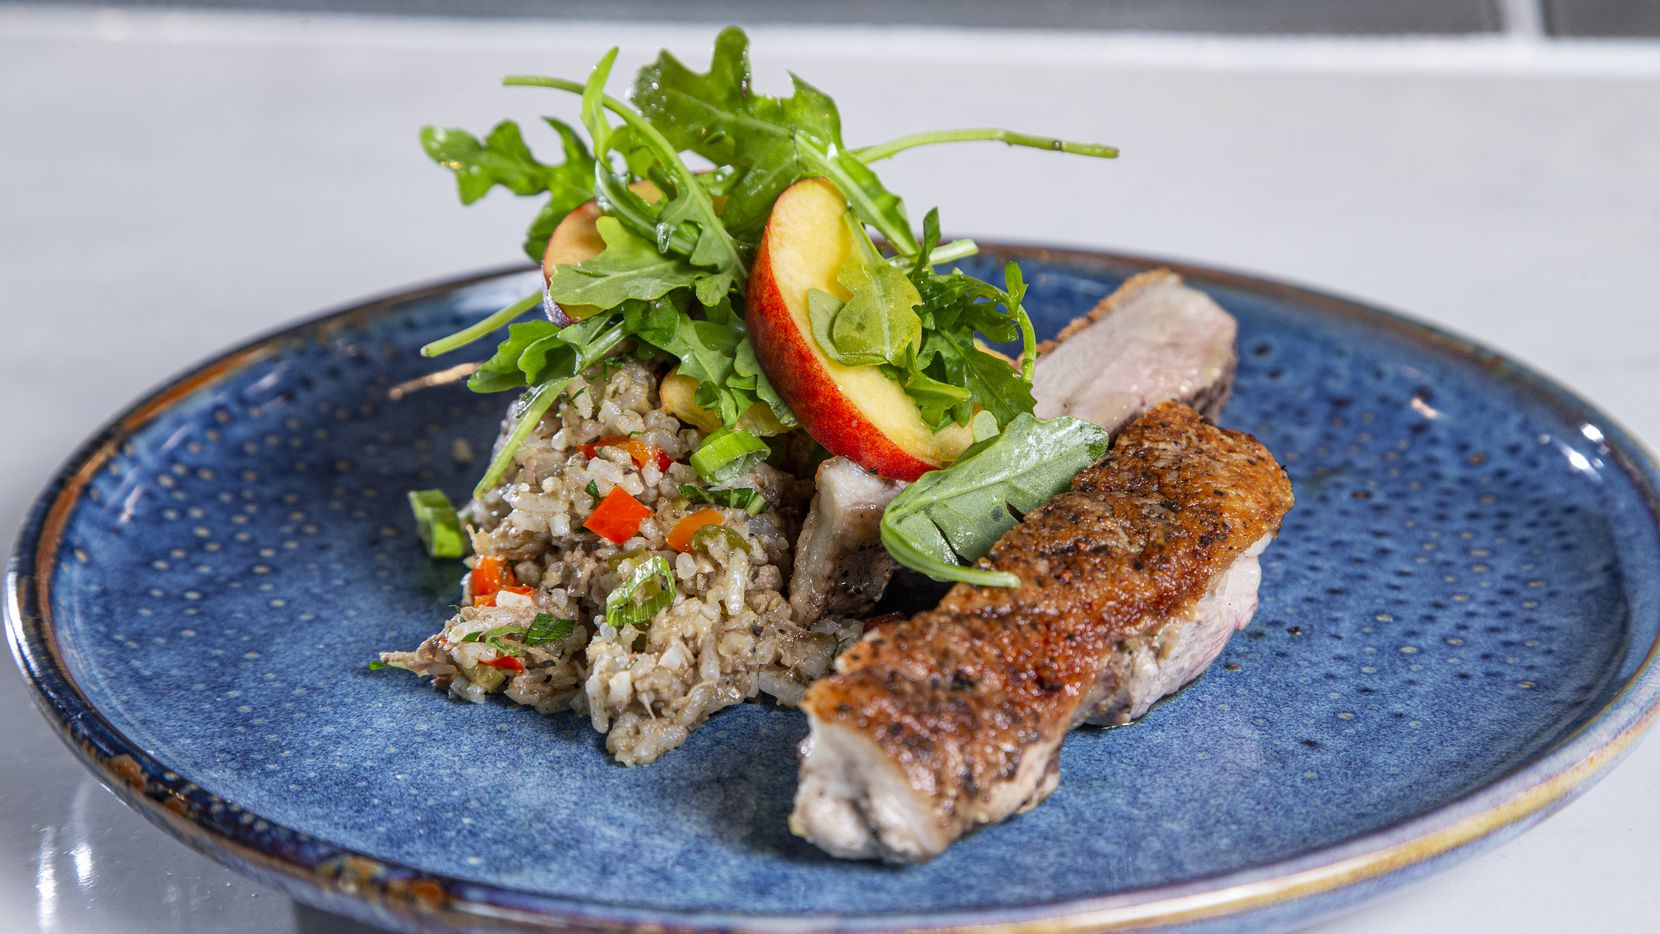 Roots Southern Kitchen's menu includes Peking duck dirty rice with peach salad. Roots is former 'Top Chef' contestant Tiffany Derry's new restaurant in Farmers Branch.